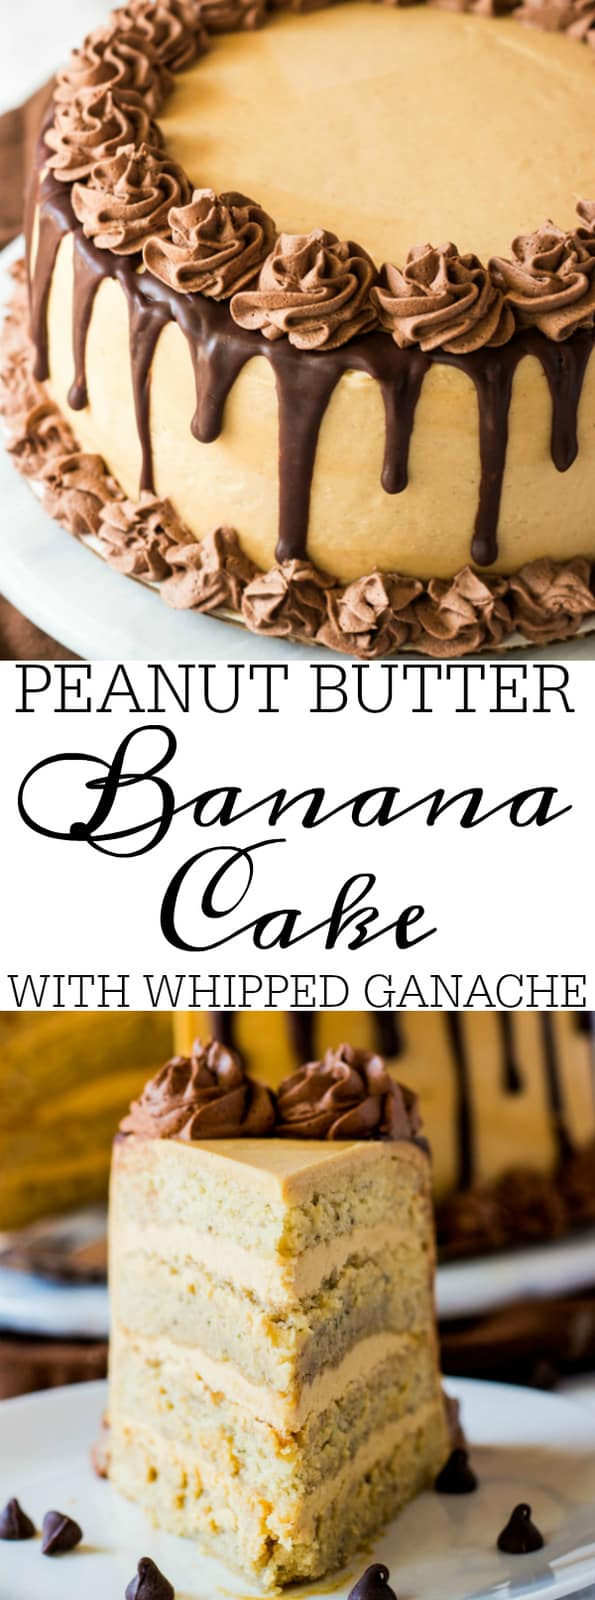 Peanut Butter Banana Cake with Whipped Ganache collage with words in middle